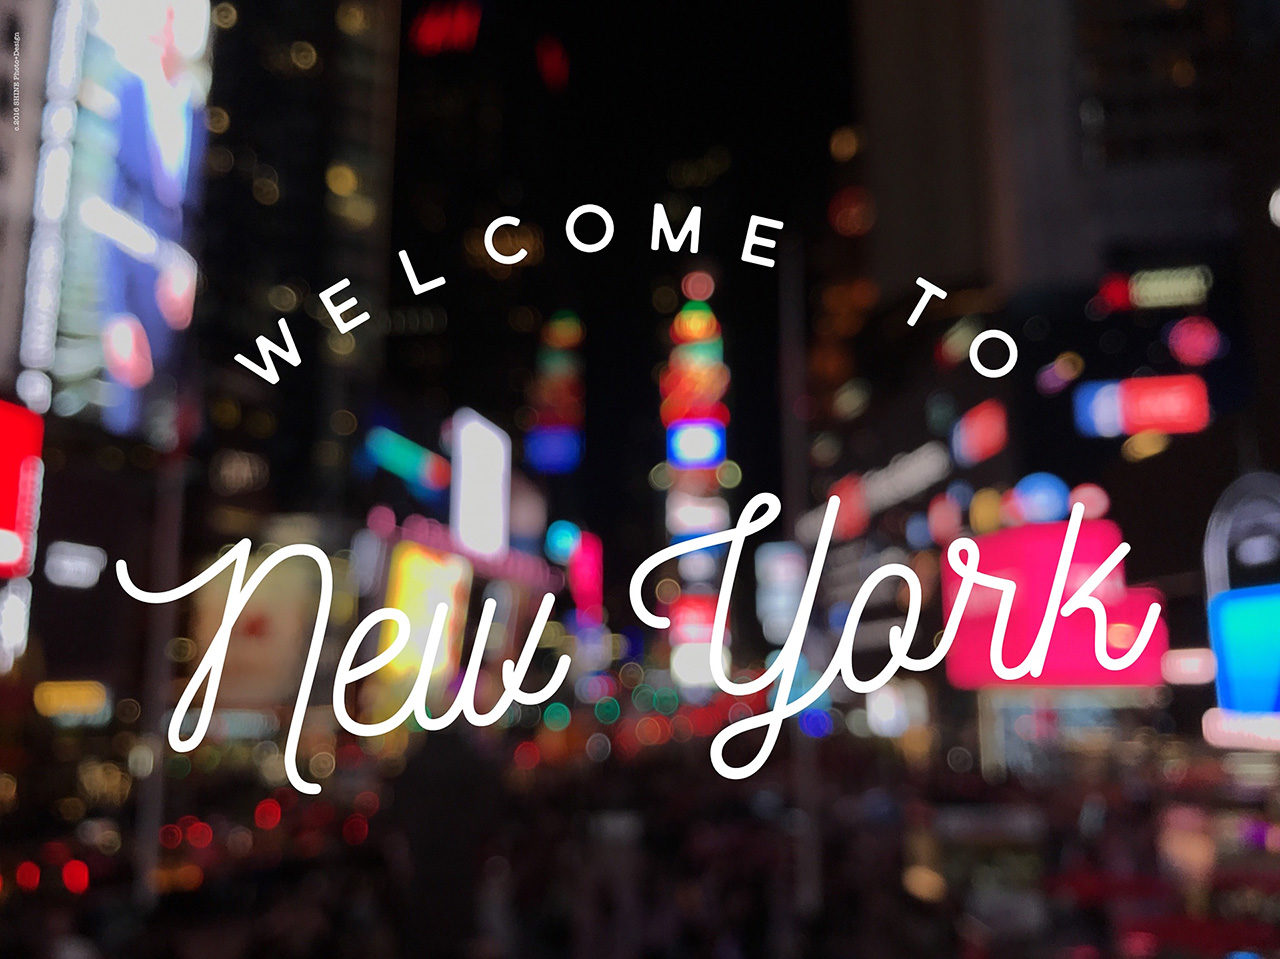 5 on 5: Welcome to New York